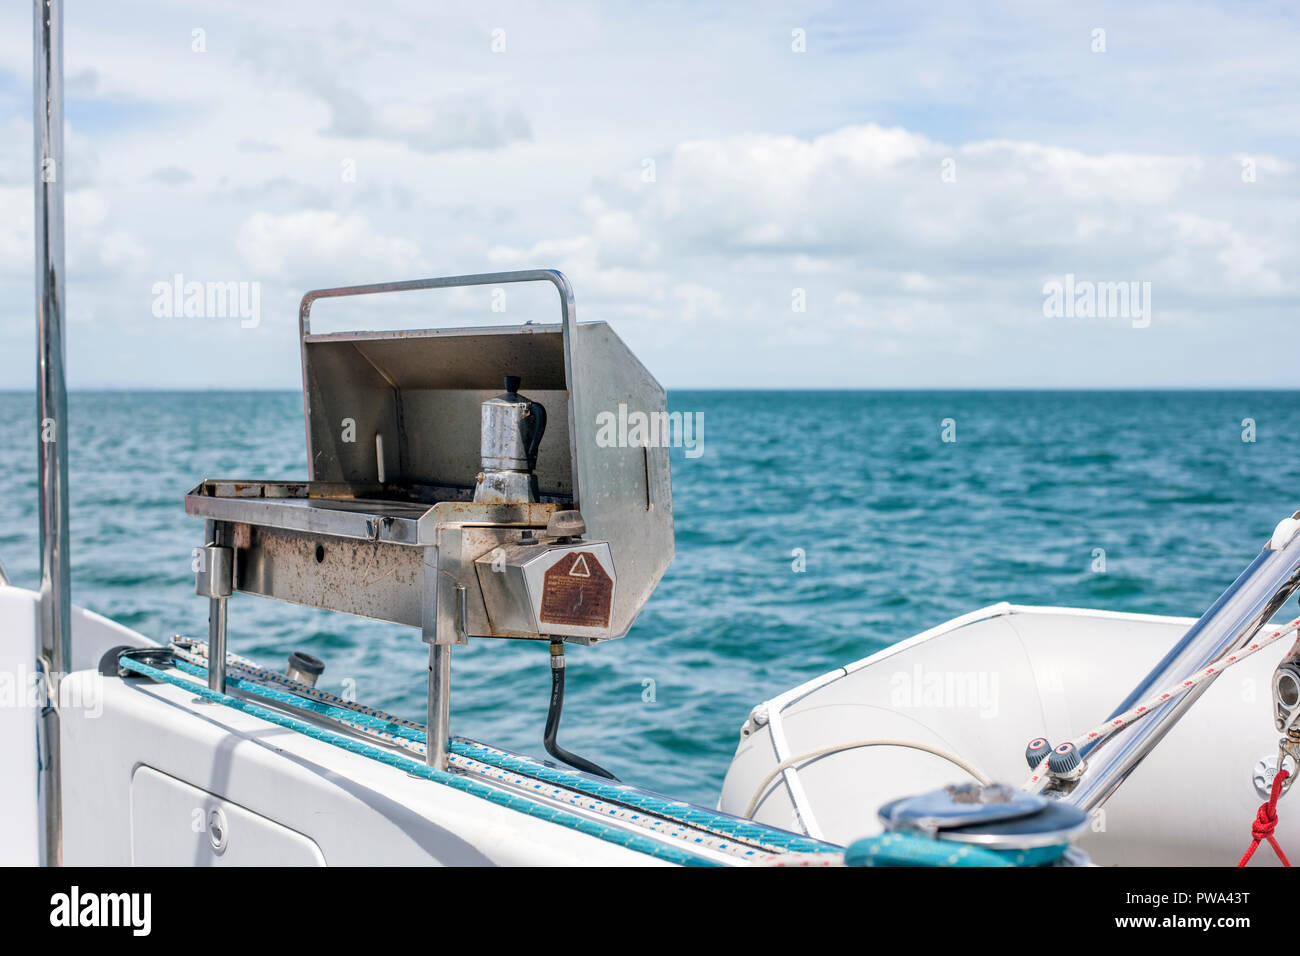 Coffee maker on barbecue attached to stern of a yacht at sea - Stock Image